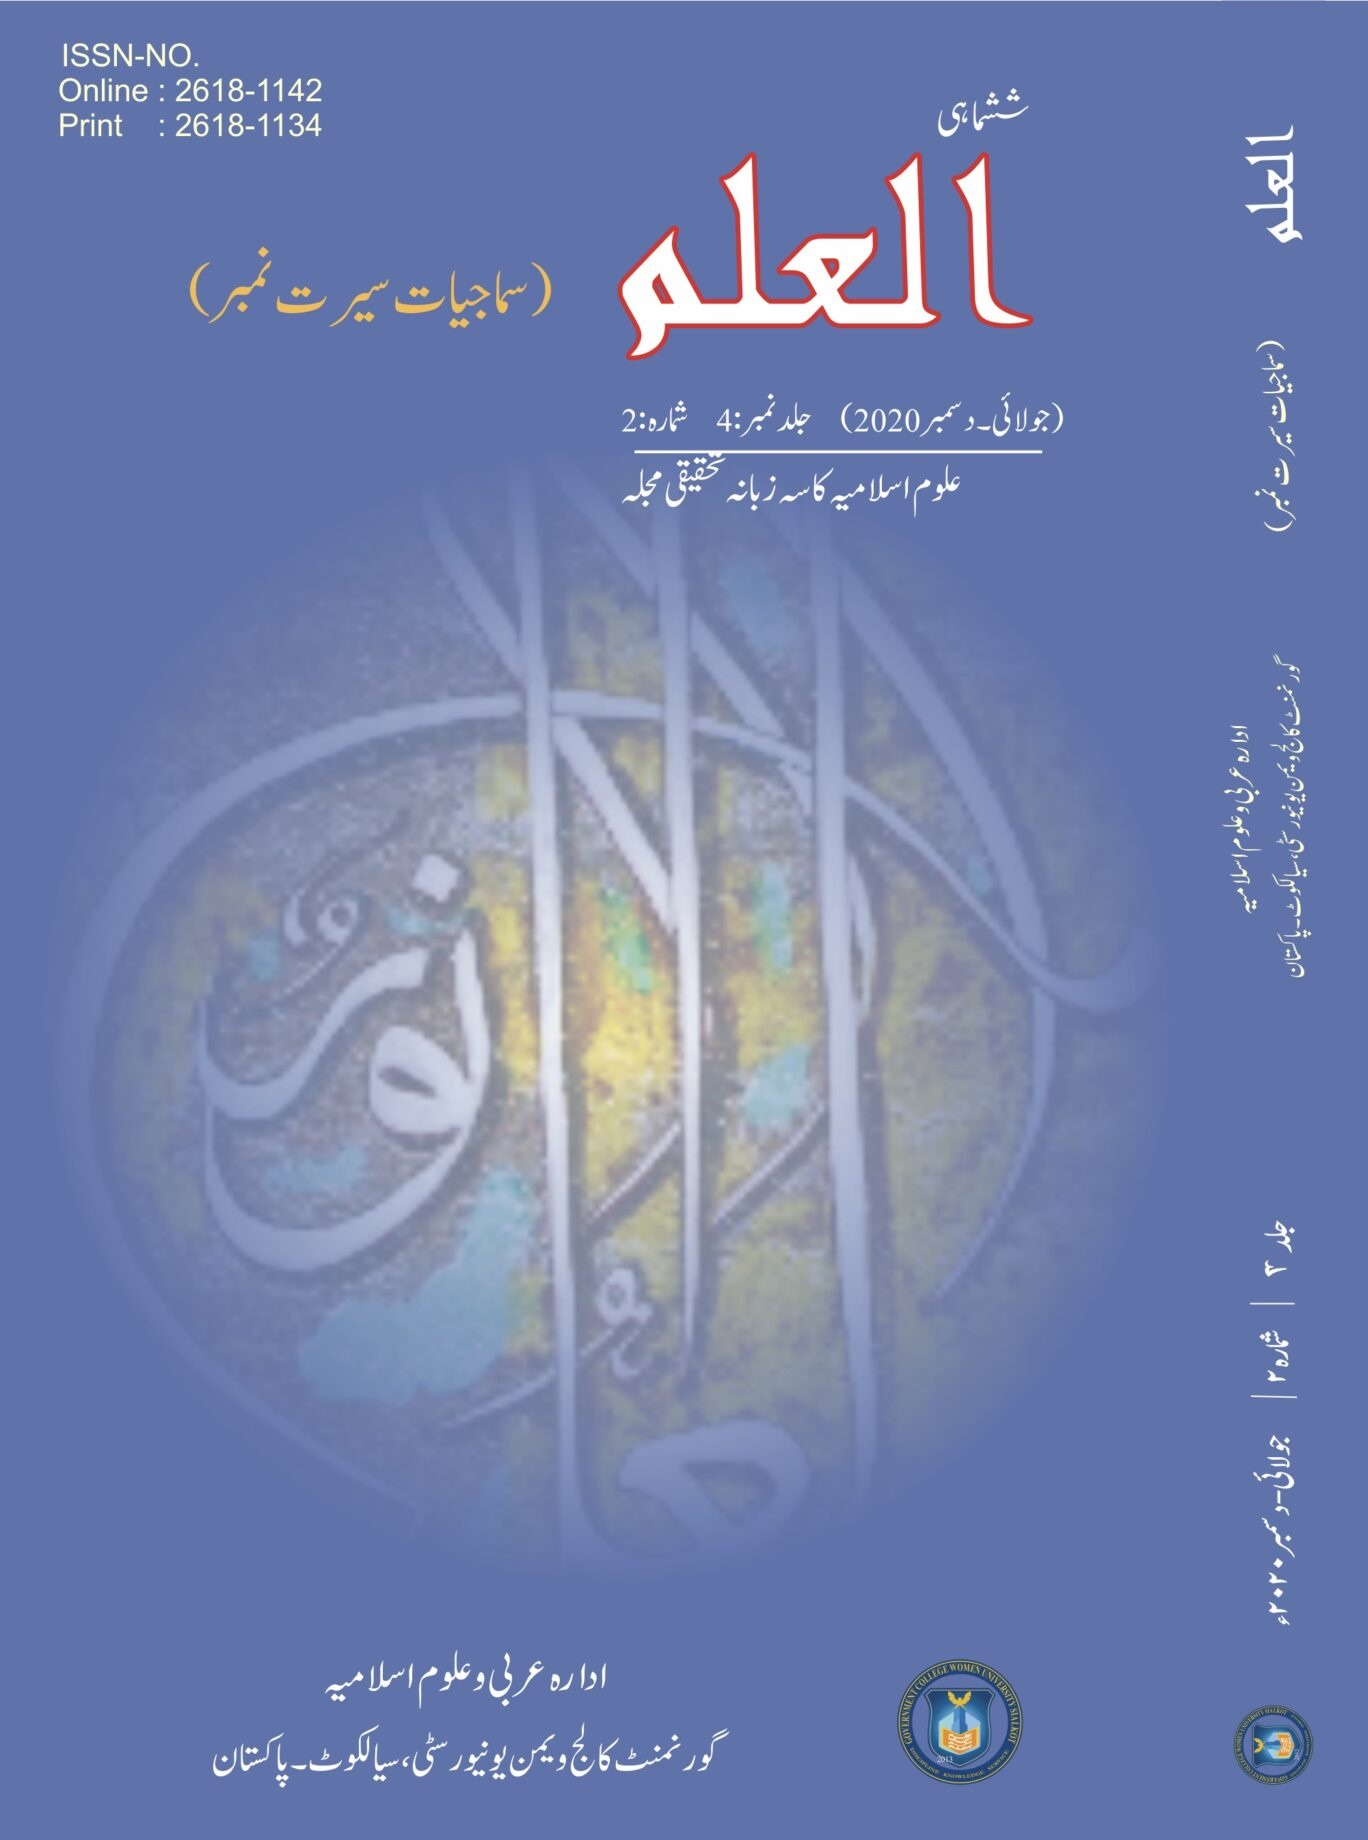 AL-ILM Research Journal, Institute of Arabic & Islamic Studies, Govt. College Women University, Sialkot